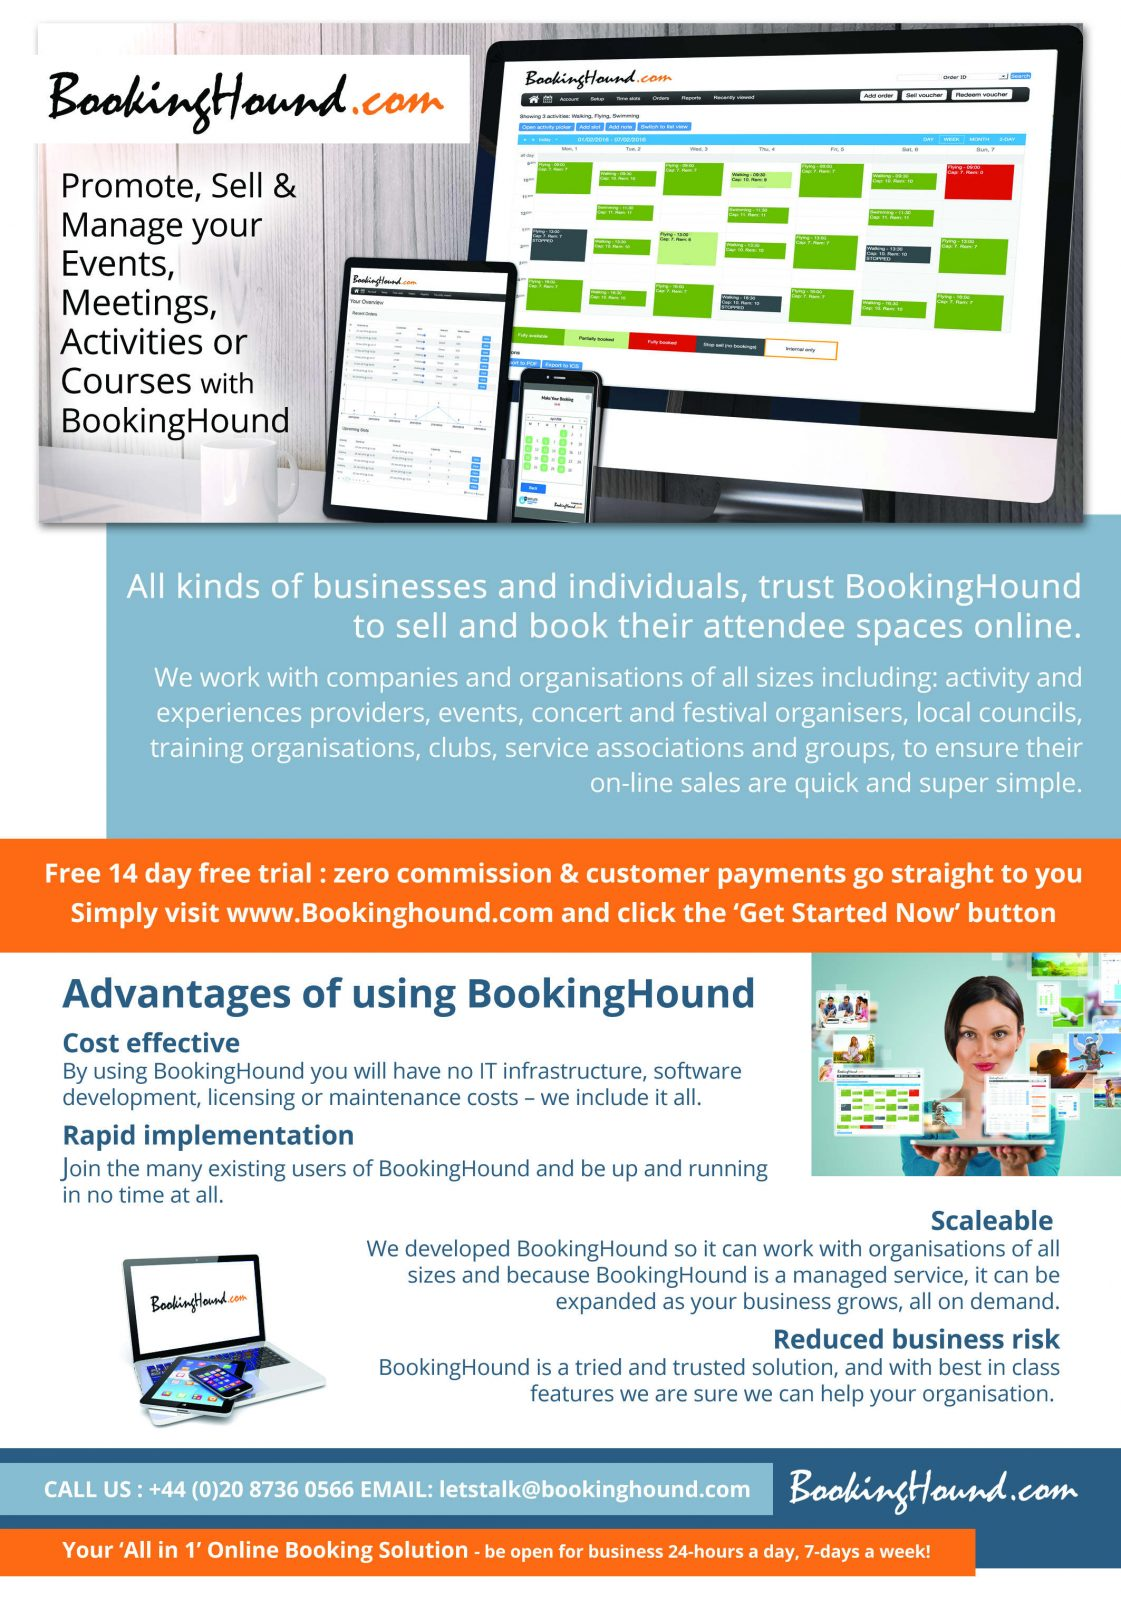 Why people Choose BookingHound